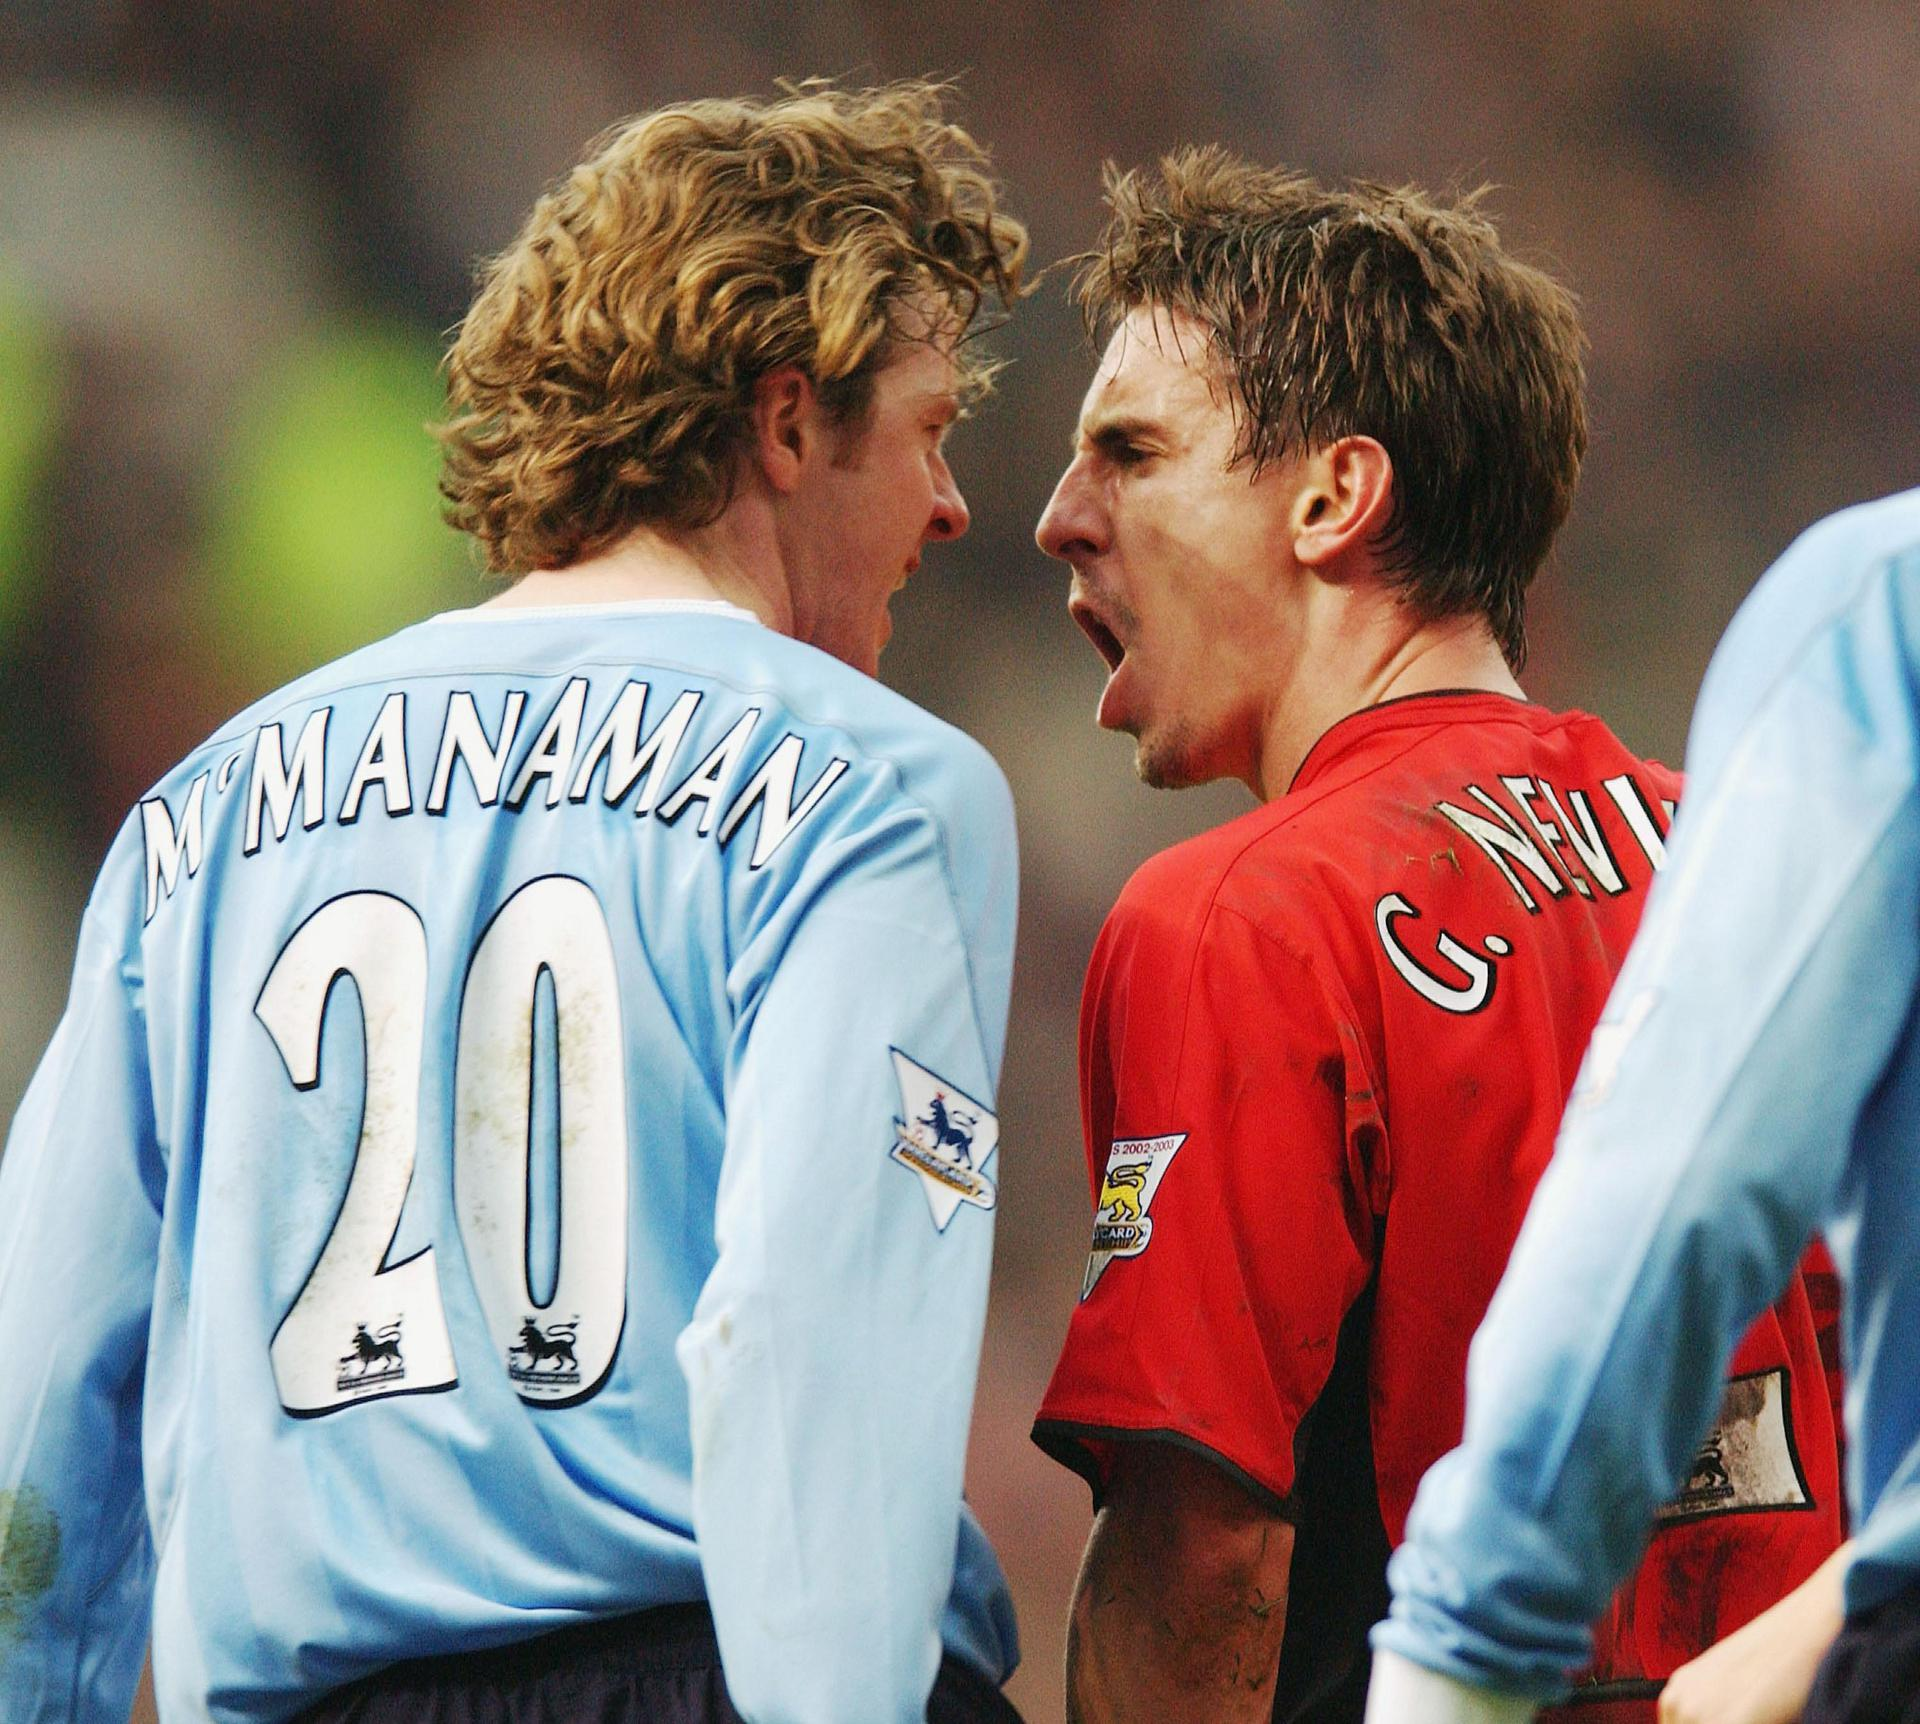 Steve McManaman and Gary Neville clash in the 2004 Manchester derby